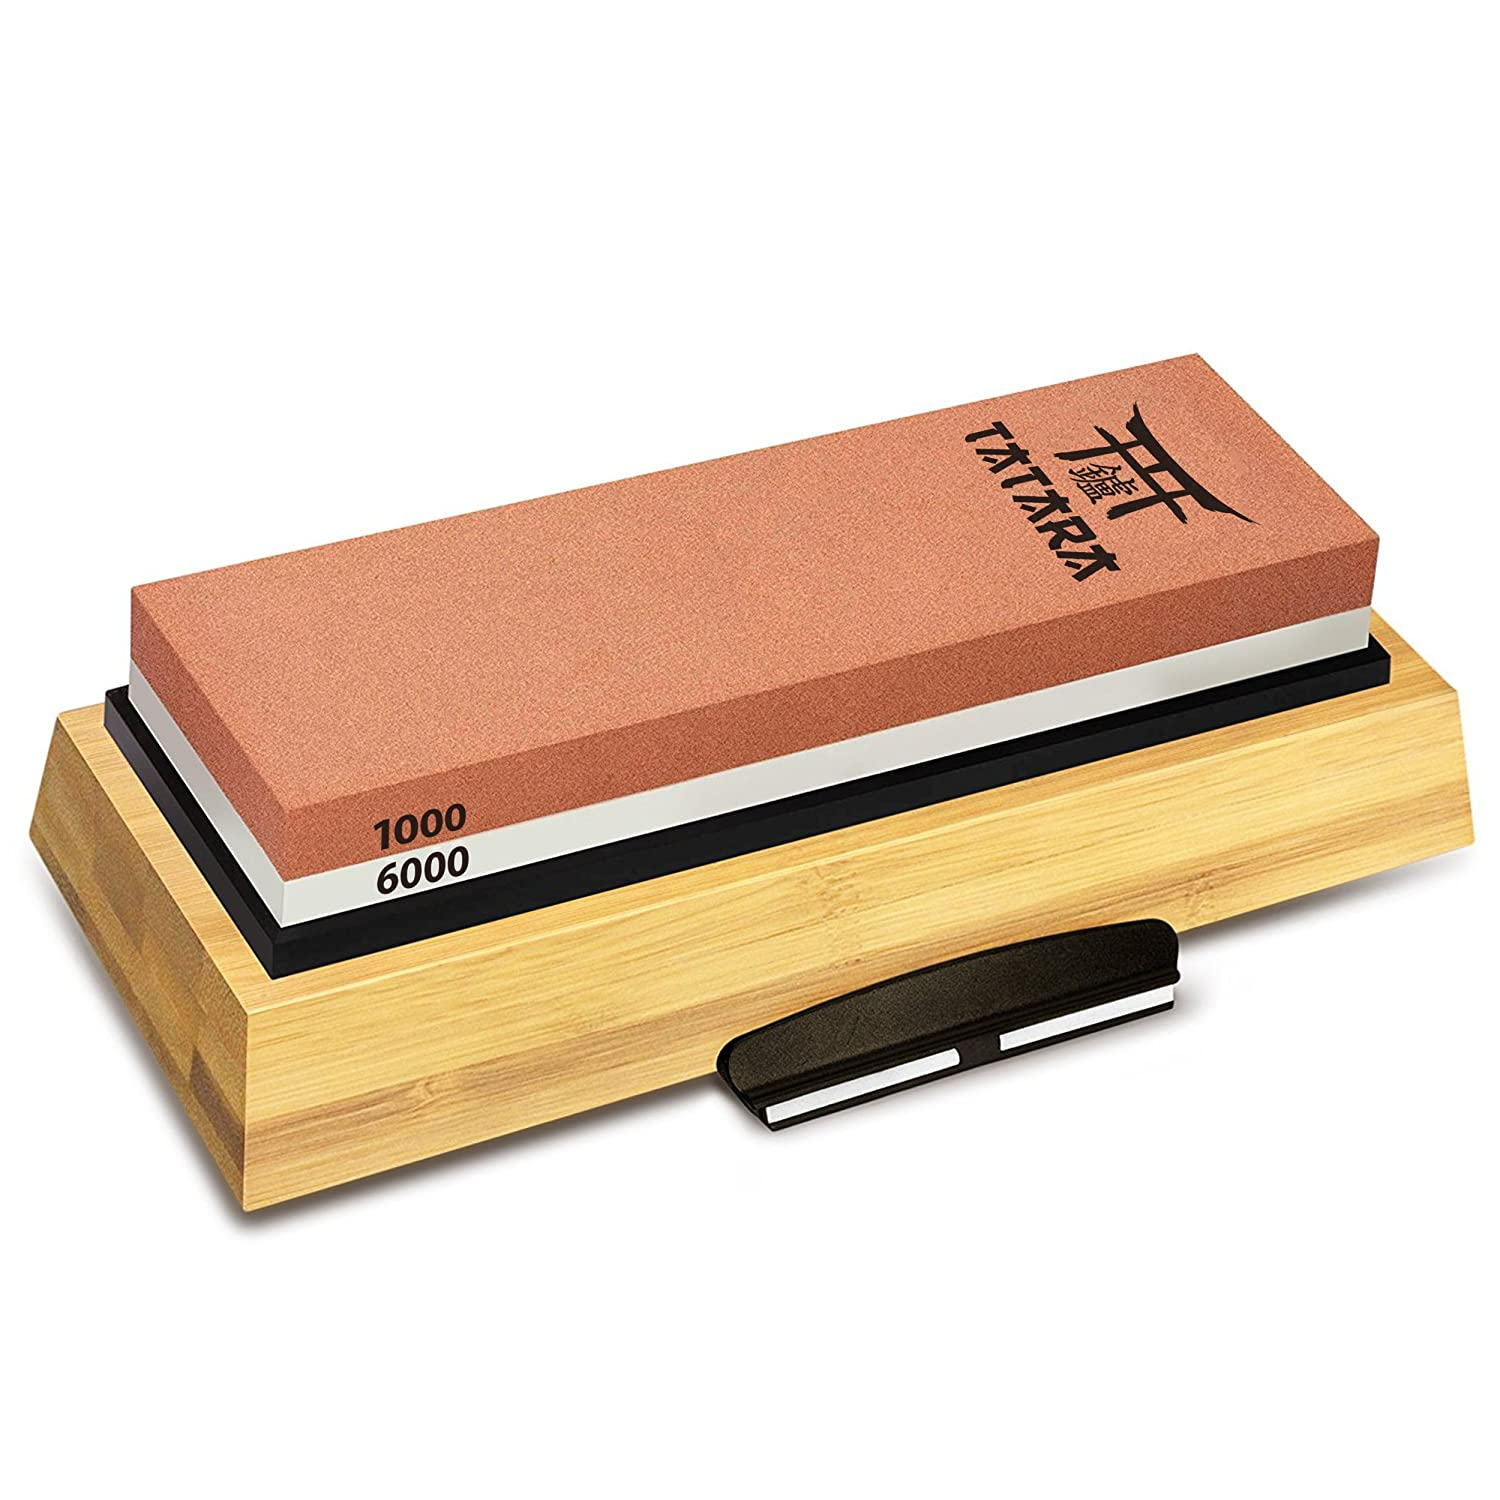 tatara sharpening stone 1000 6000 grit double sided knife tatara sharpening stone 1000 6000 grit double sided knife sharpener japanese whetstone set for knives with non slip bamboo base free angle guide